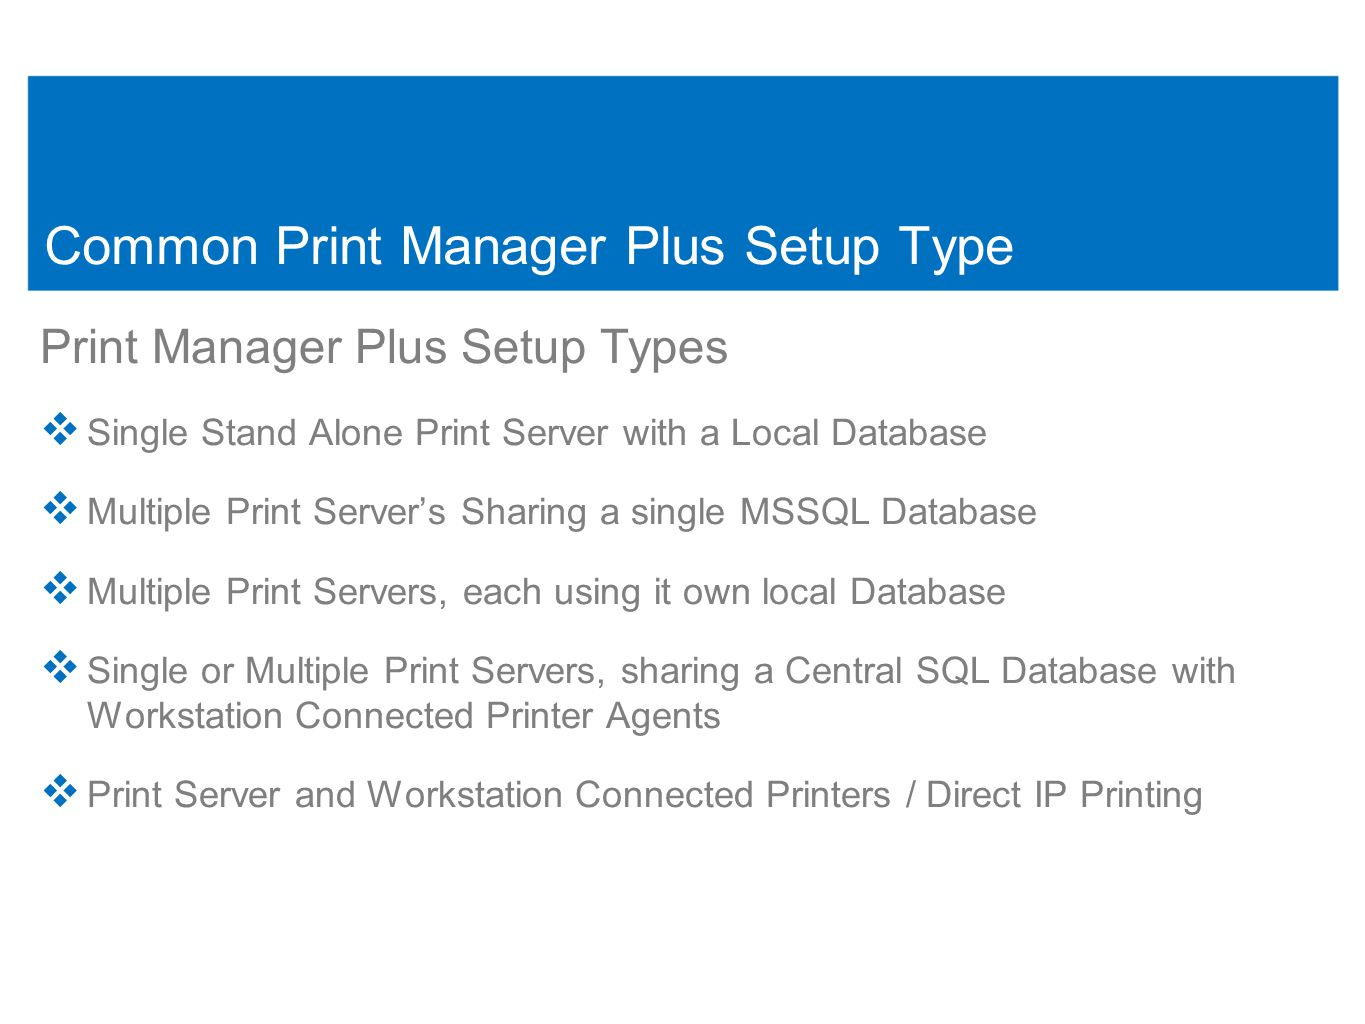 7 Common Print Manager Plus Setup Type Print Manager Plus Setup Types  Single Stand Alone Print Server with a Local Database  Multiple Print Server's Sharing a single MSSQL Database  Multiple Print Servers, each using it own local Database  Single or Multiple Print Servers, sharing a Central SQL Database with Workstation Connected Printer Agents  Print Server and Workstation Connected Printers / Direct IP Printing 7